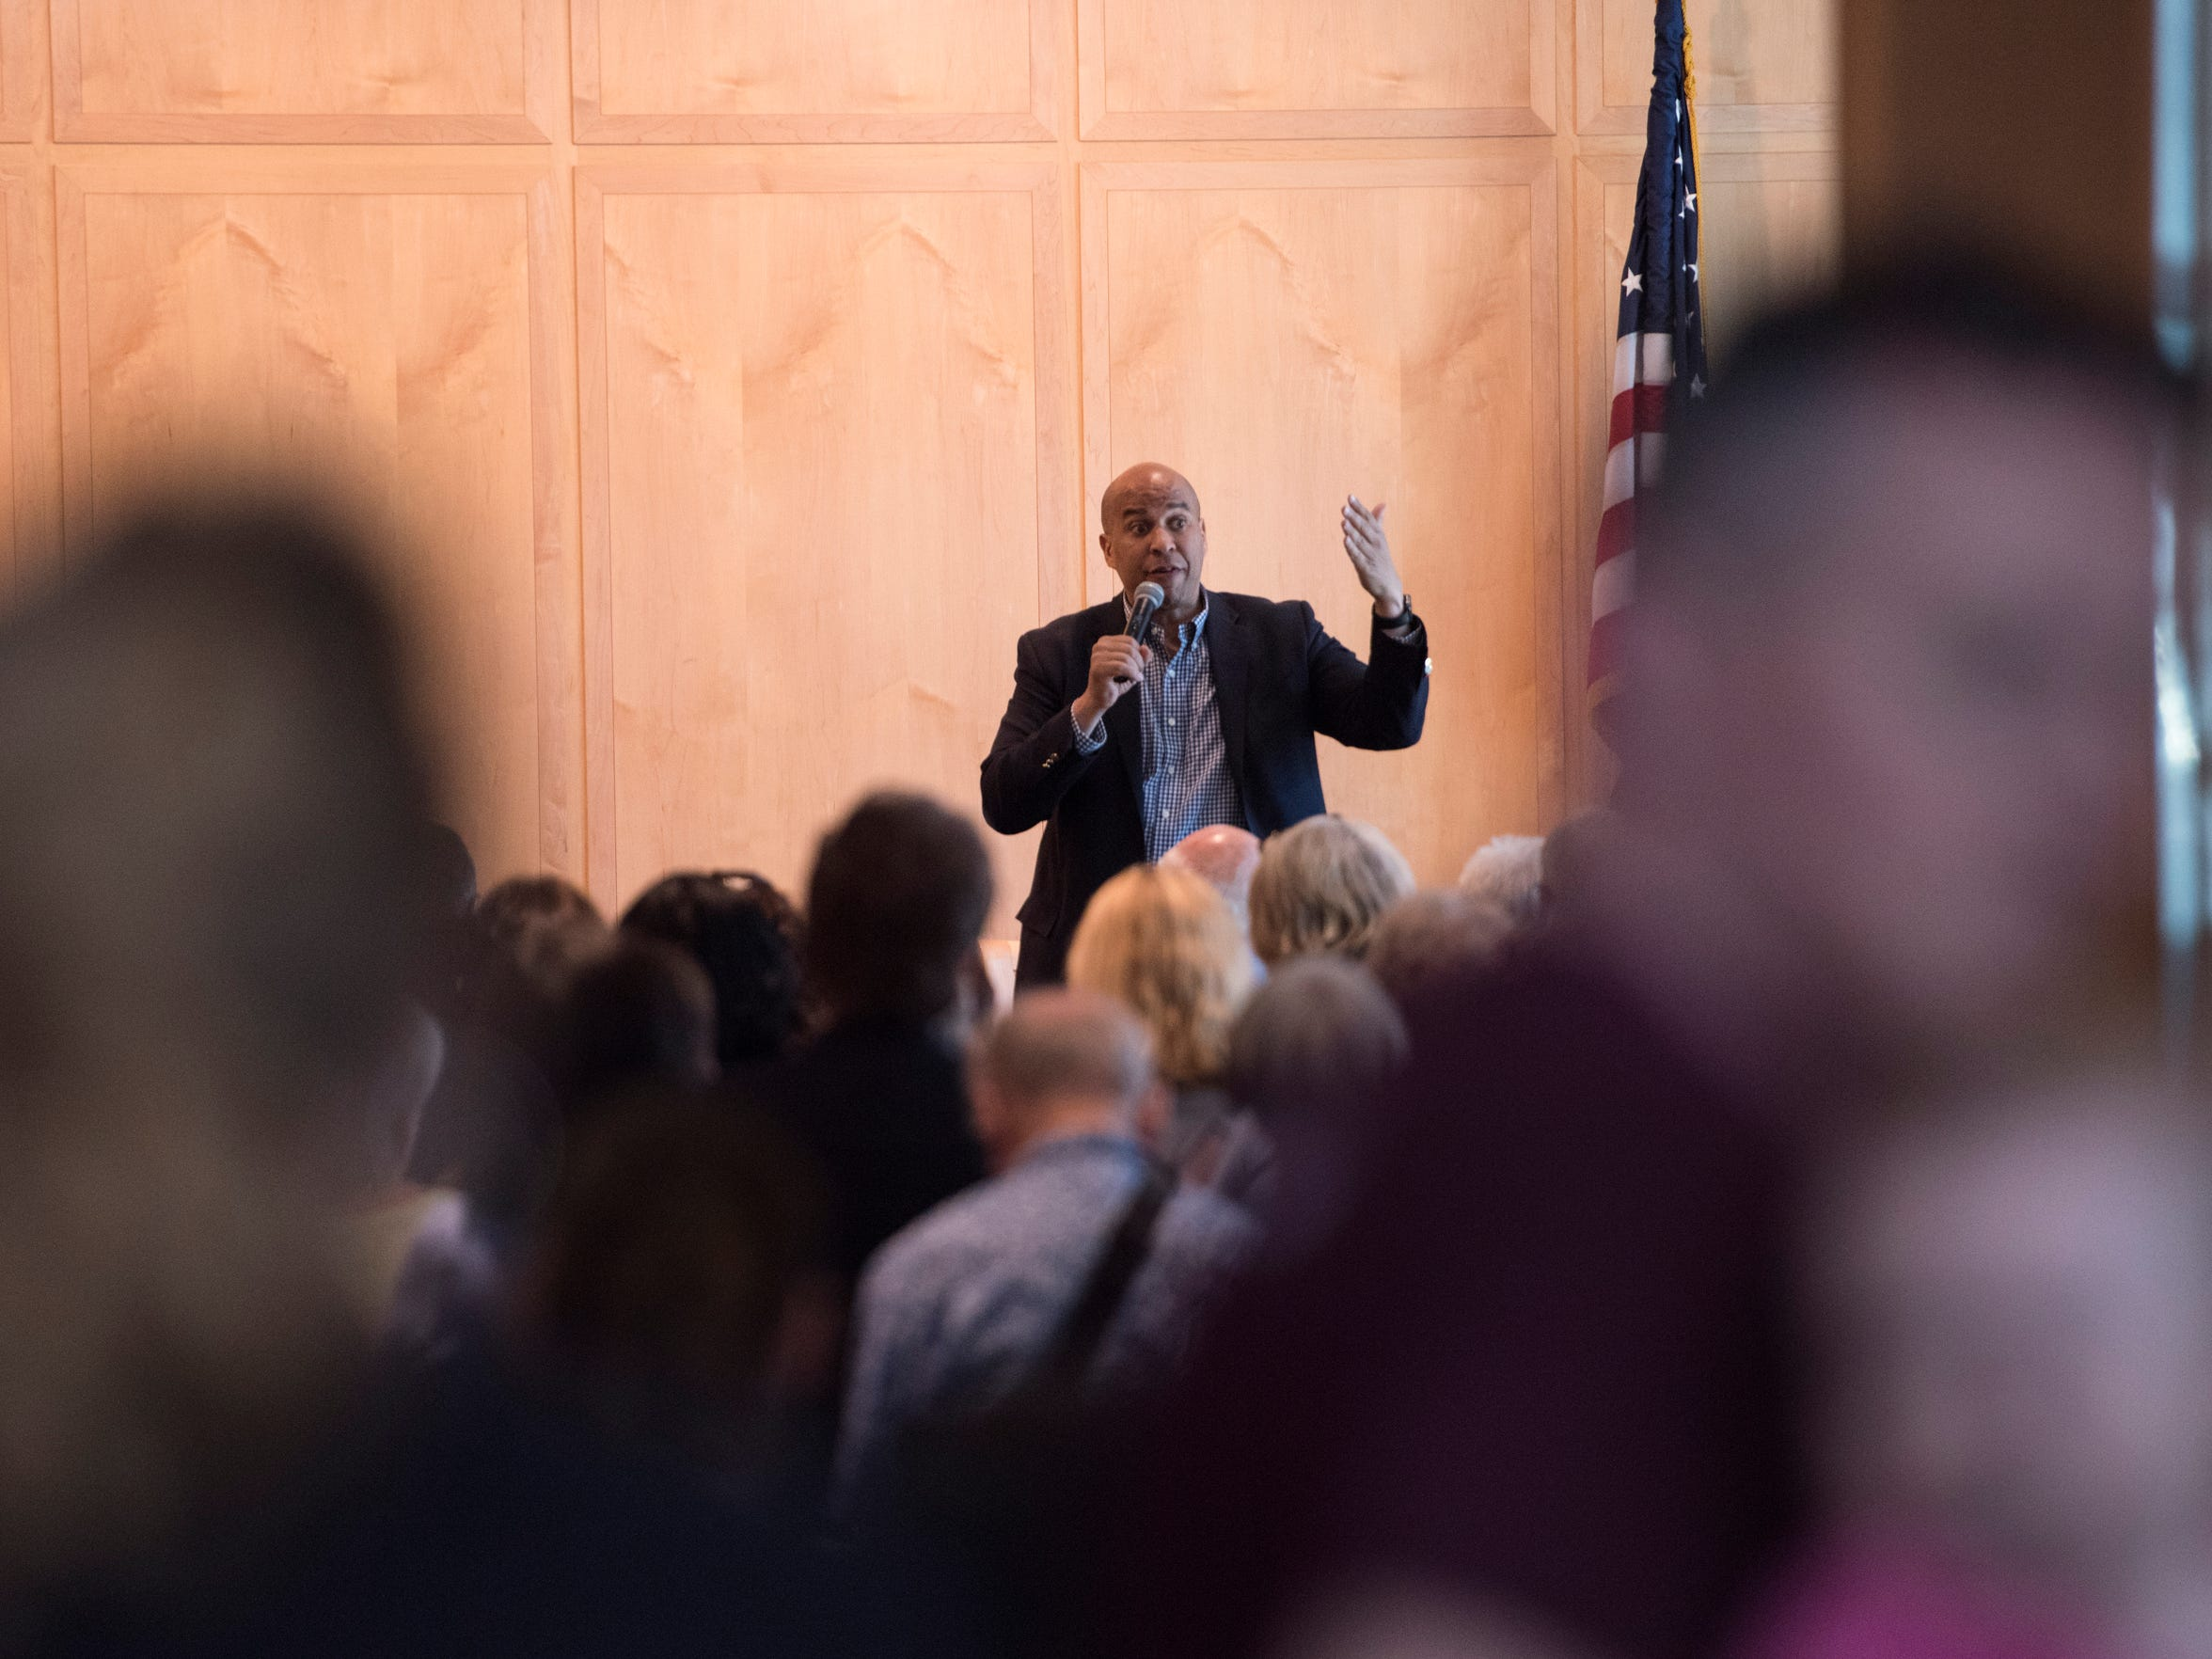 Senator Cory Booker speaking recently at the Princeton